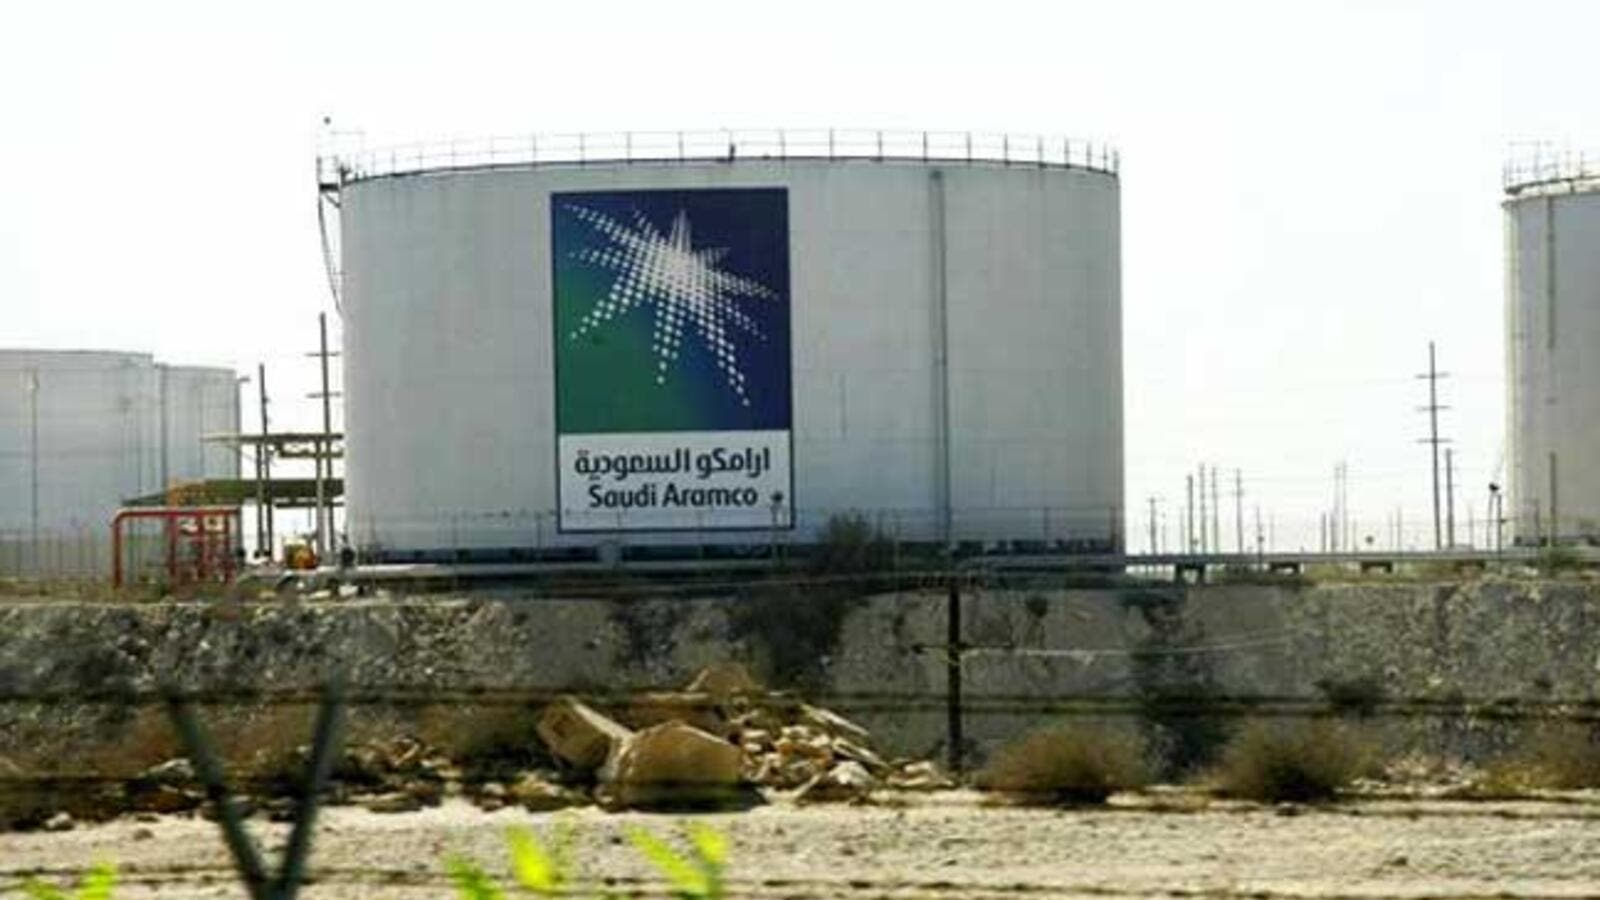 Saudi Arabia is expected to sell up to five percent of Aramco via an initial public offering. (Oilpro)